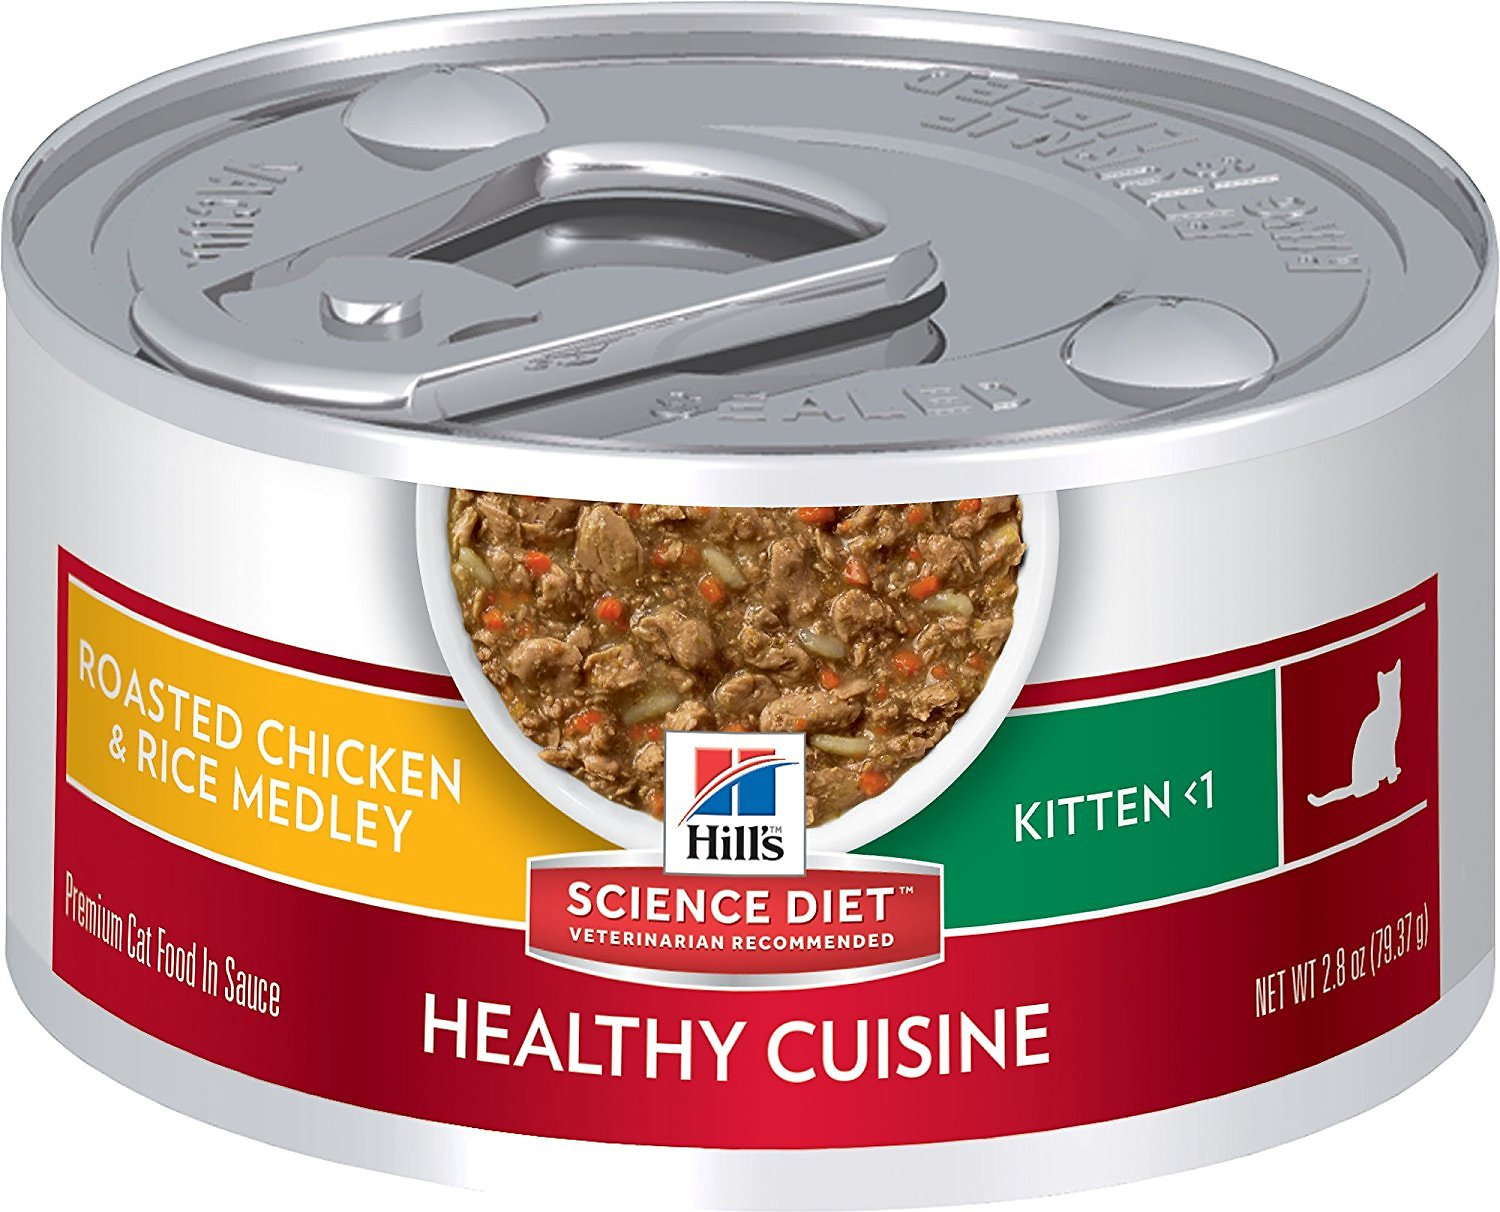 Hill's Science Diet Kitten Healthy Cuisine Roasted Chicken & Rice Medley Canned Cat Food Image